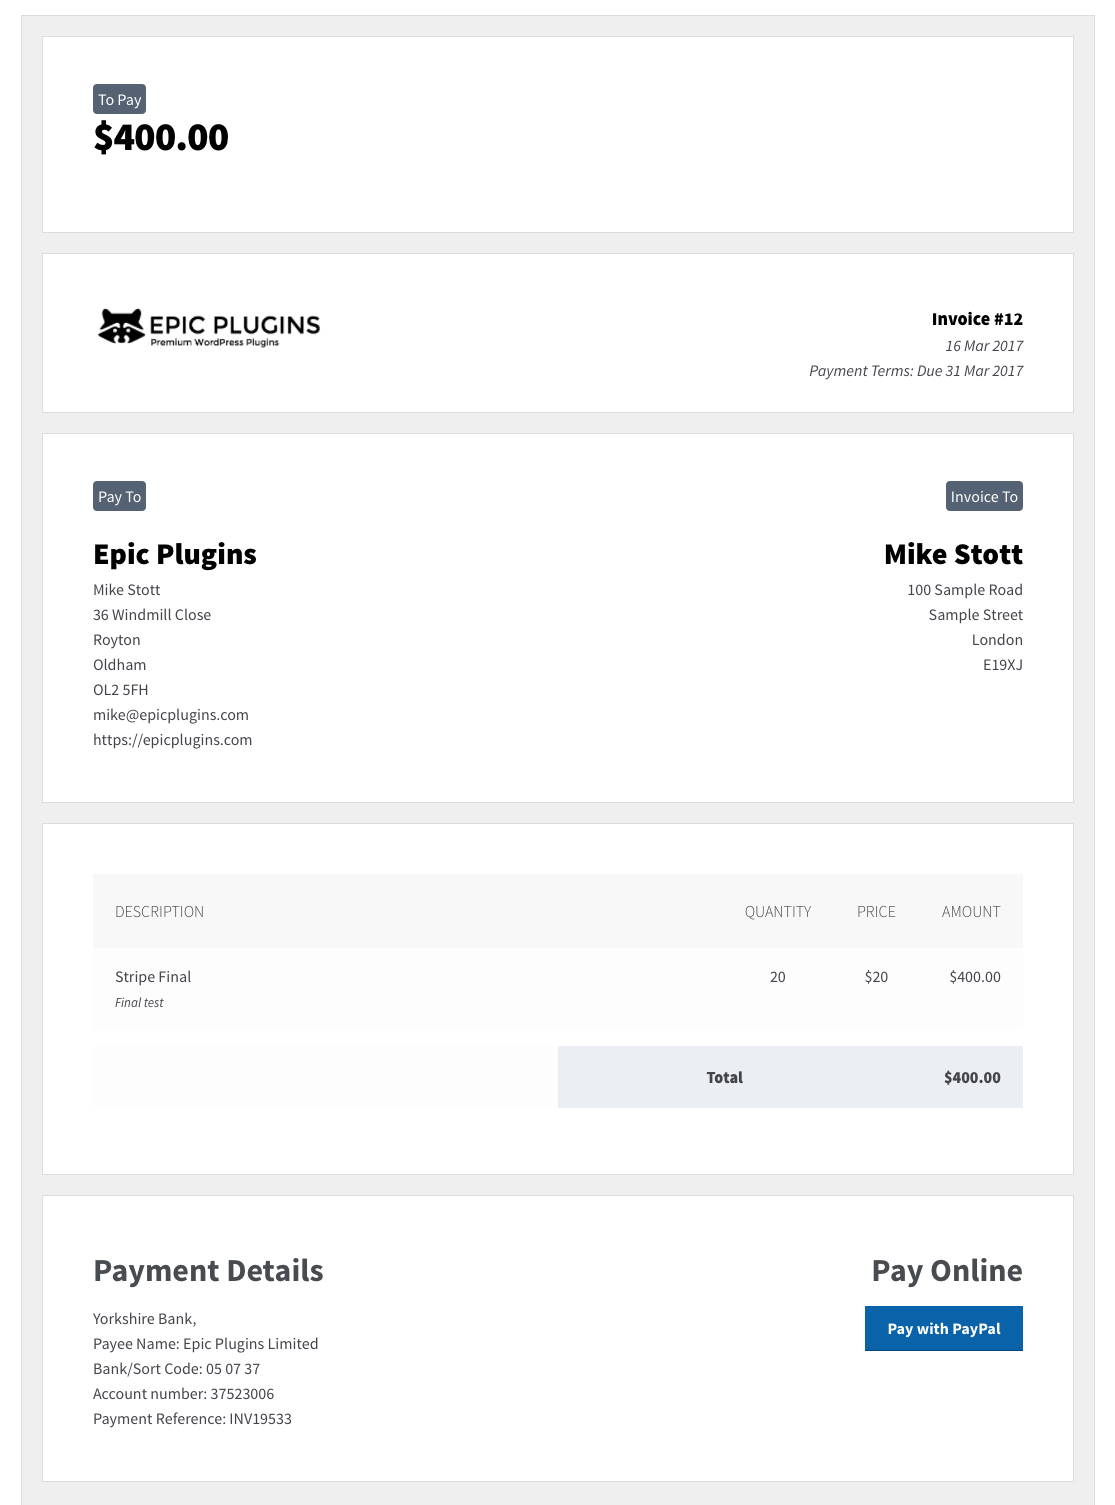 Invoicing PRO Zero BS CRM - How to send an invoice for freelance work